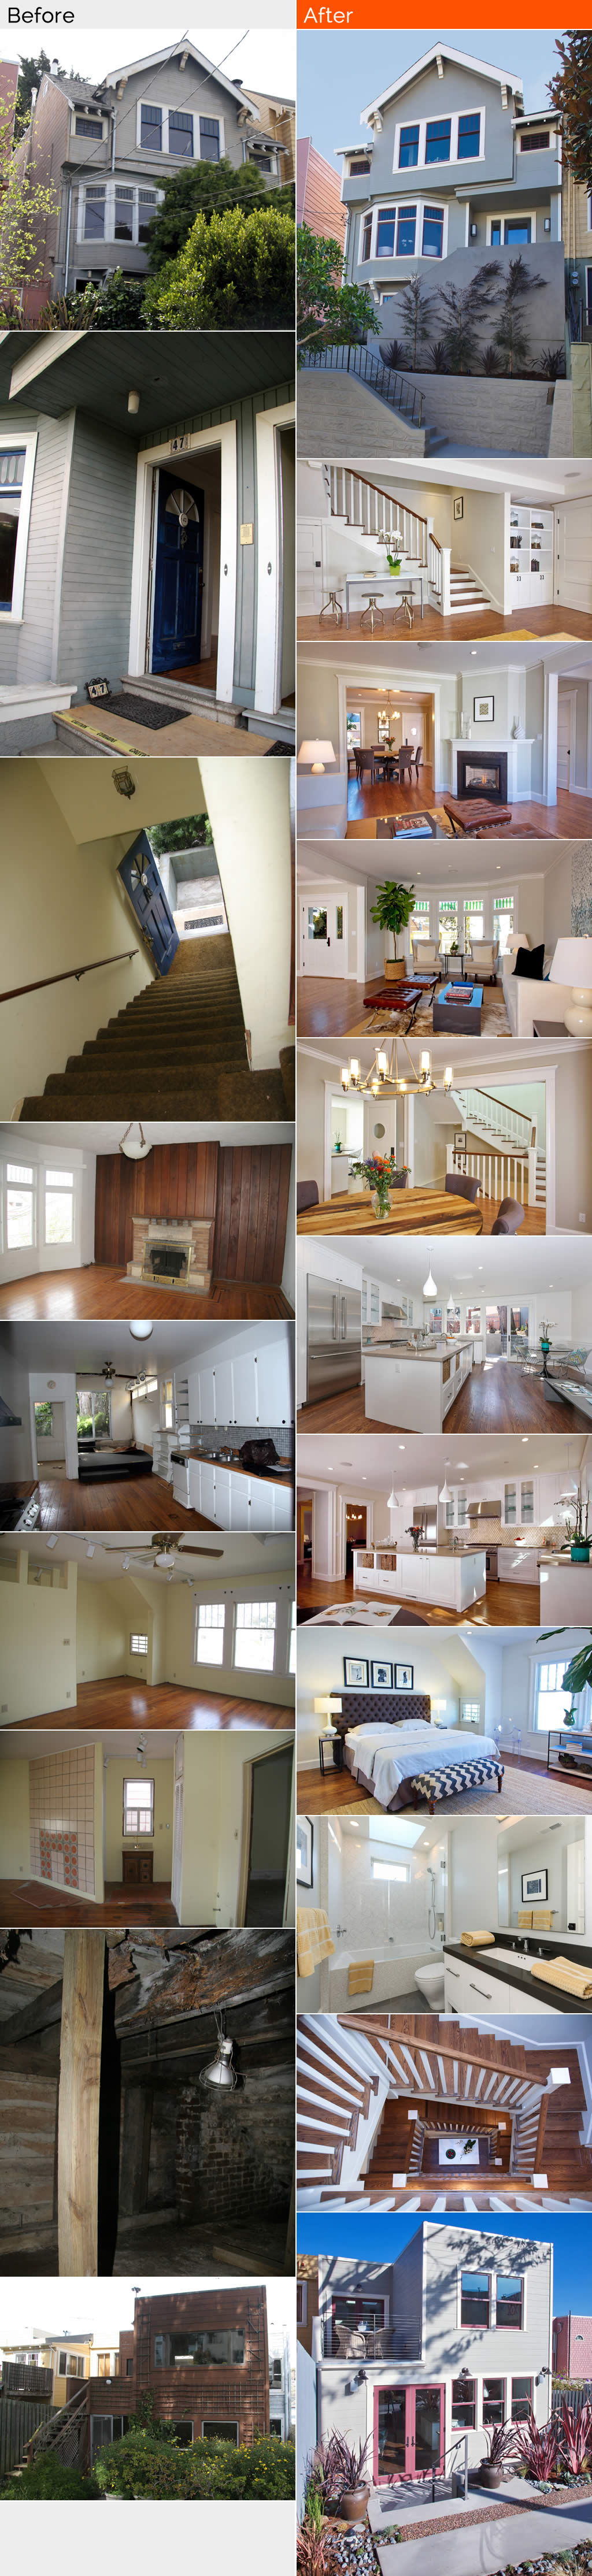 Eureka Valley Renovation - Before and After Photos